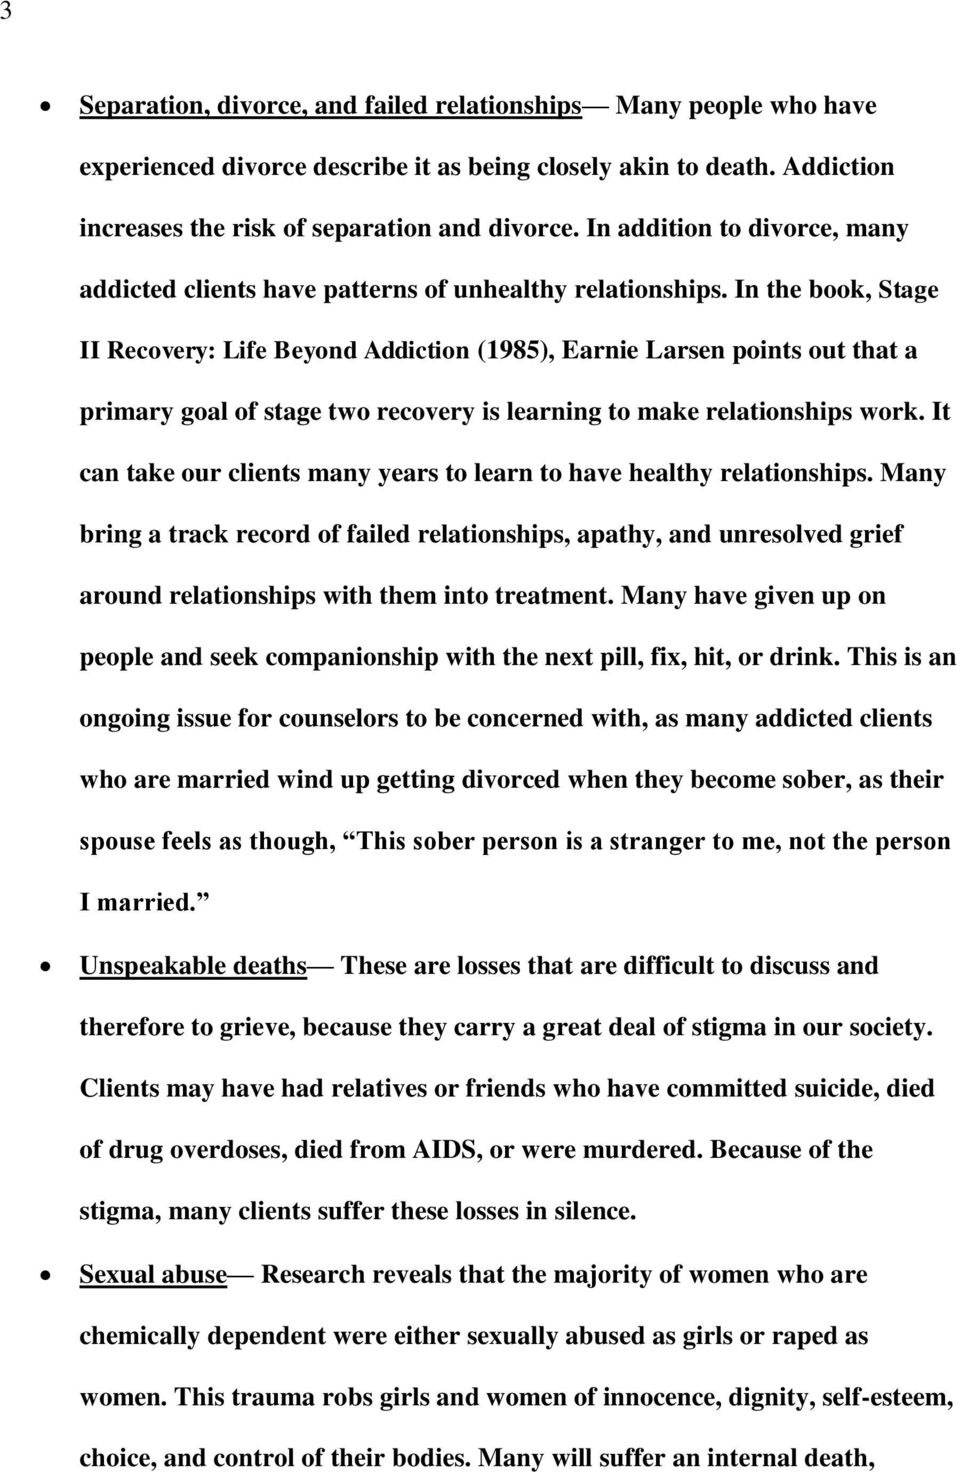 In the book, Stage II Recovery: Life Beyond Addiction (1985), Earnie Larsen points out that a primary goal of stage two recovery is learning to make relationships work.